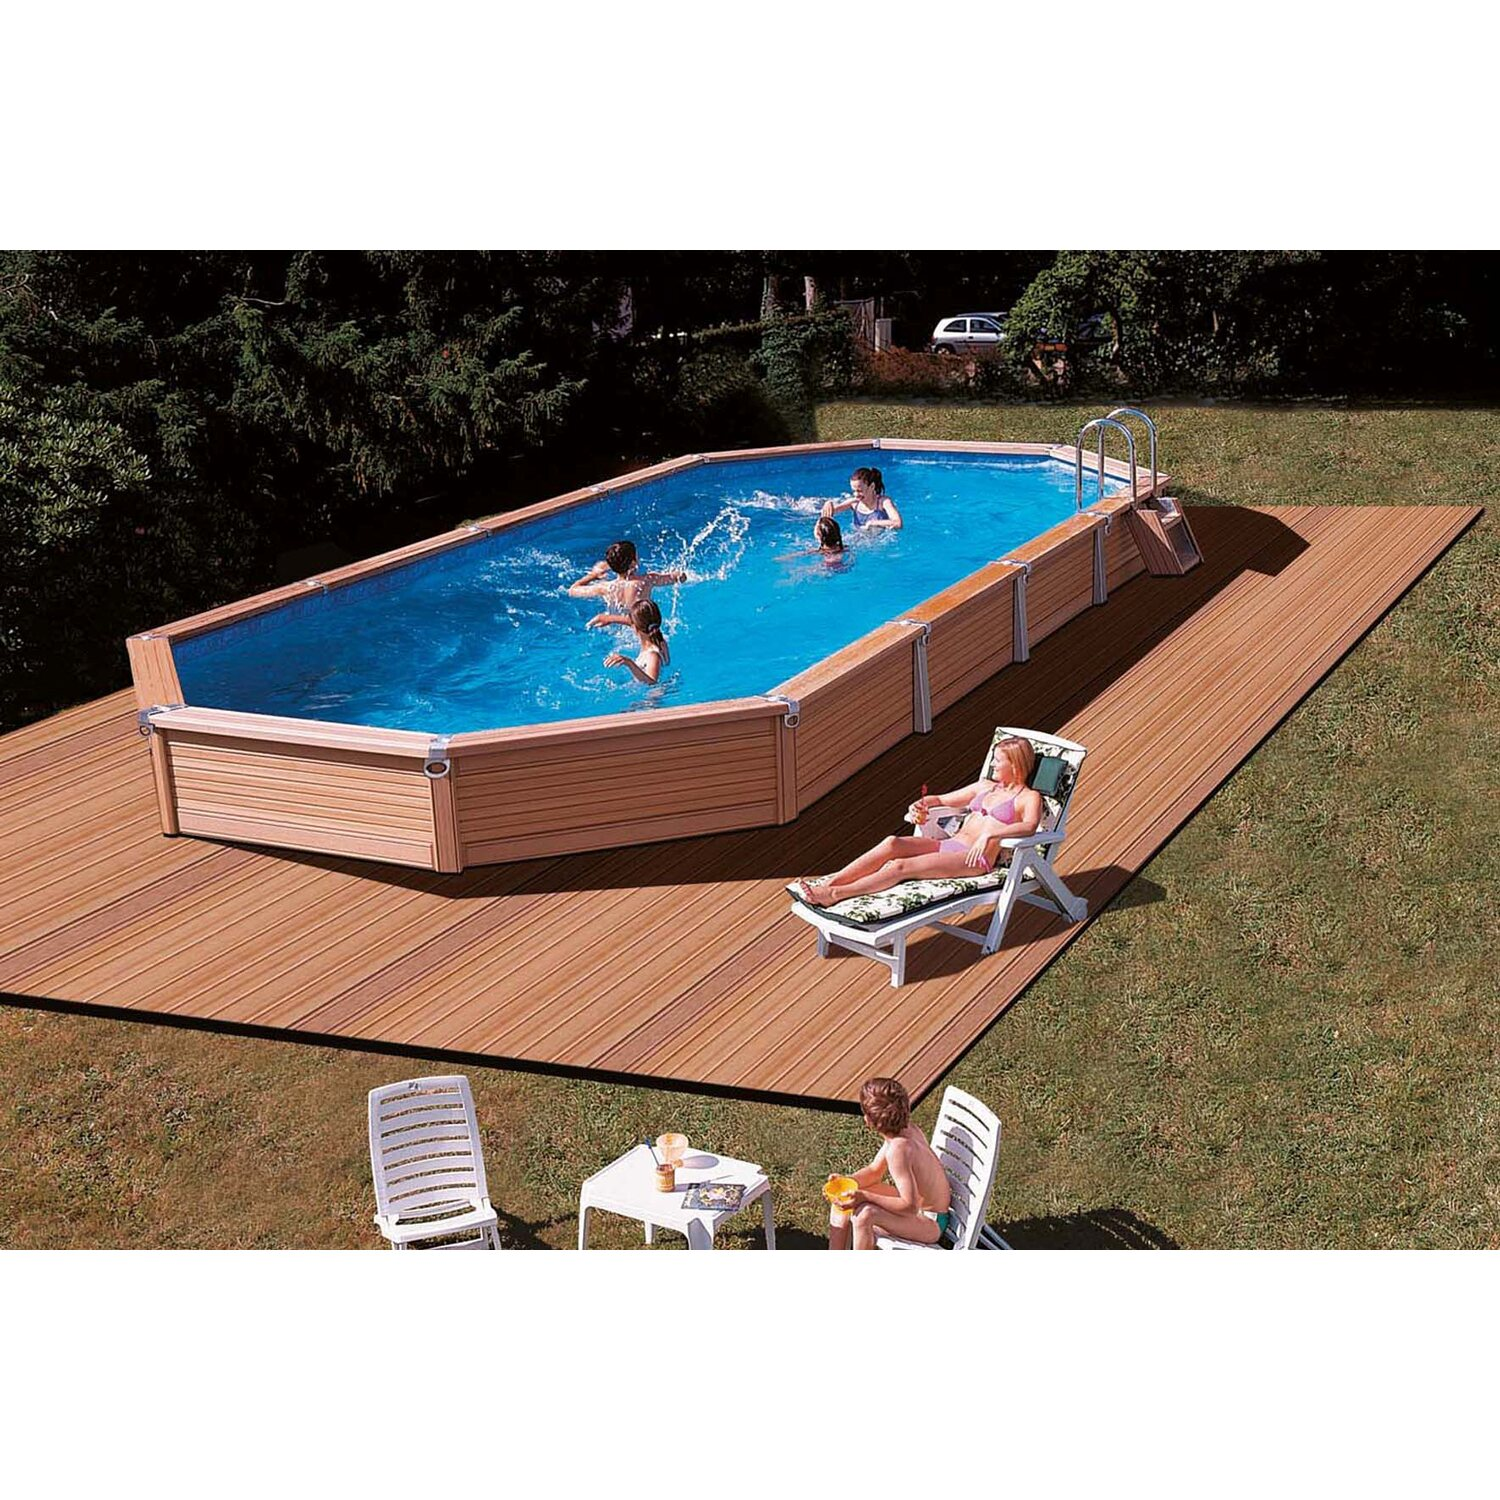 Einbaupool set brandneu gfk nordeney x x solobecken mit for Obi poolfolie